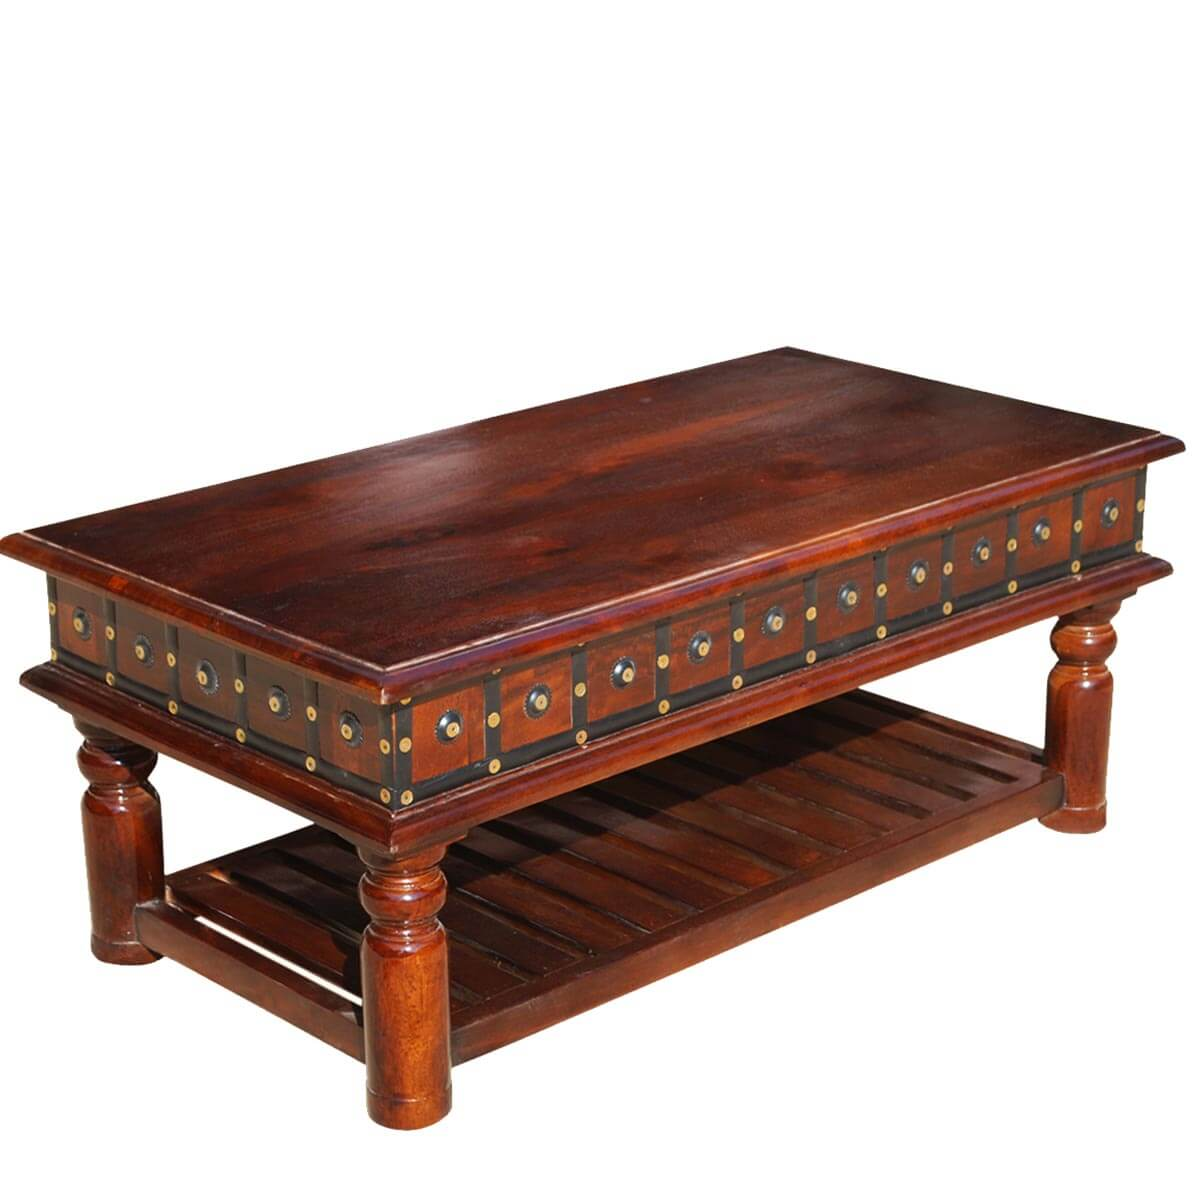 home heritage furniture colonial dutch mango wood 2 tier coffee table